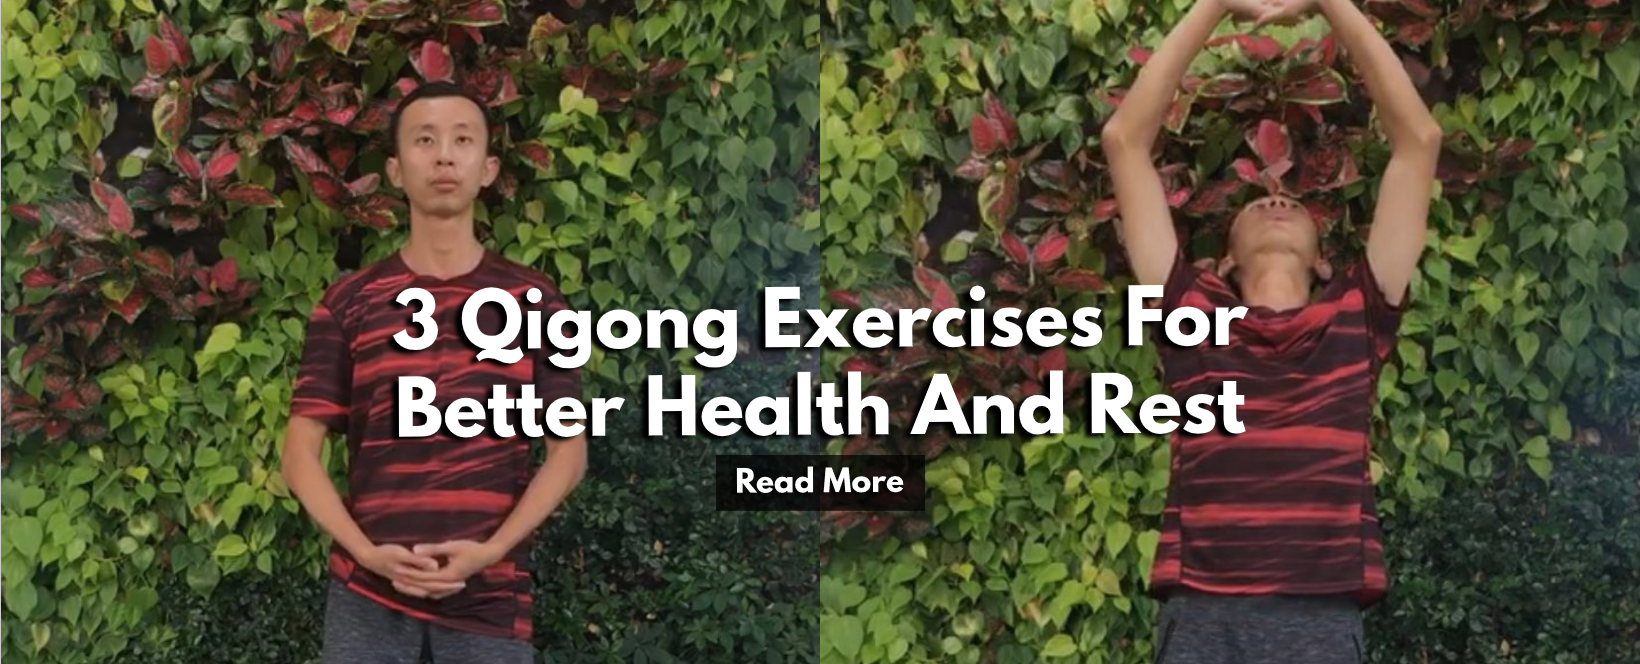 3 Qigong Exercises For Better Health And Rest